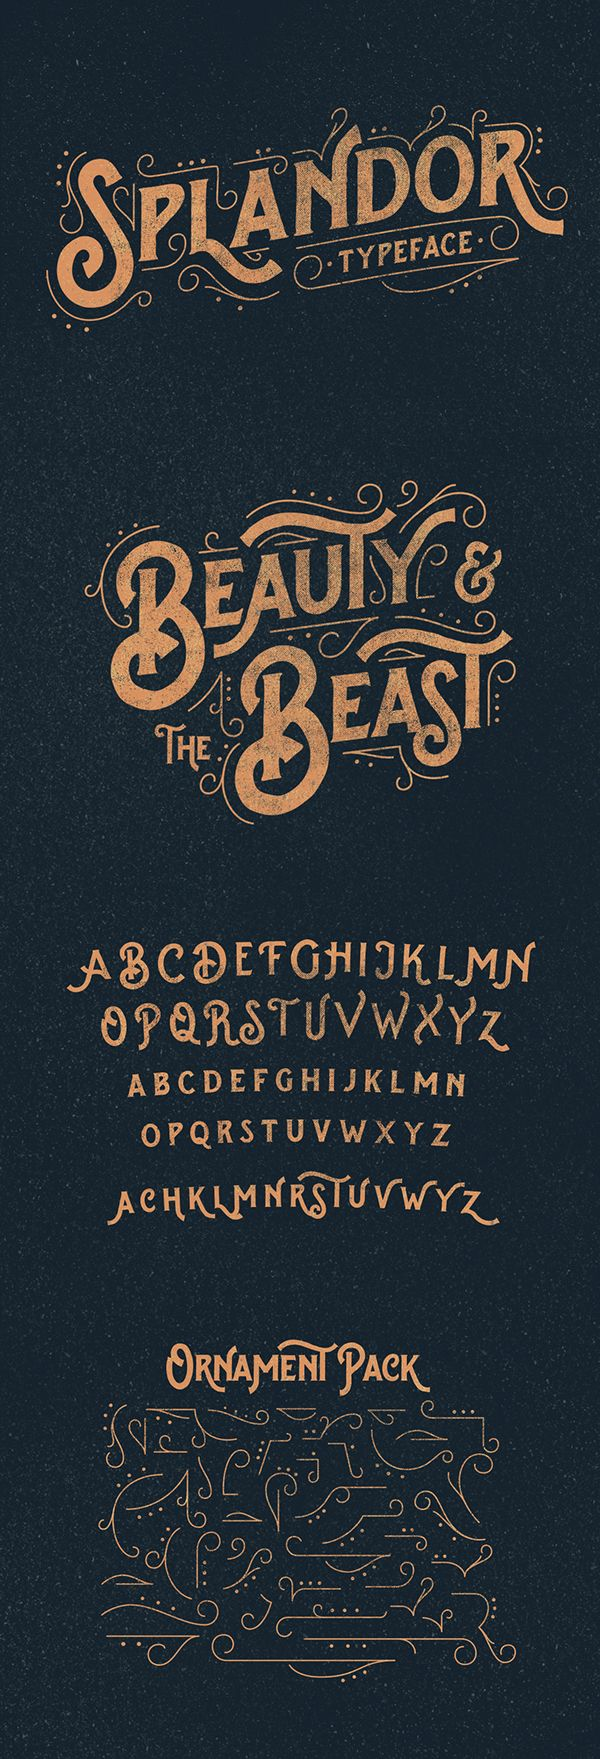 Splandor Typeface by Ilham Herry, via Behance